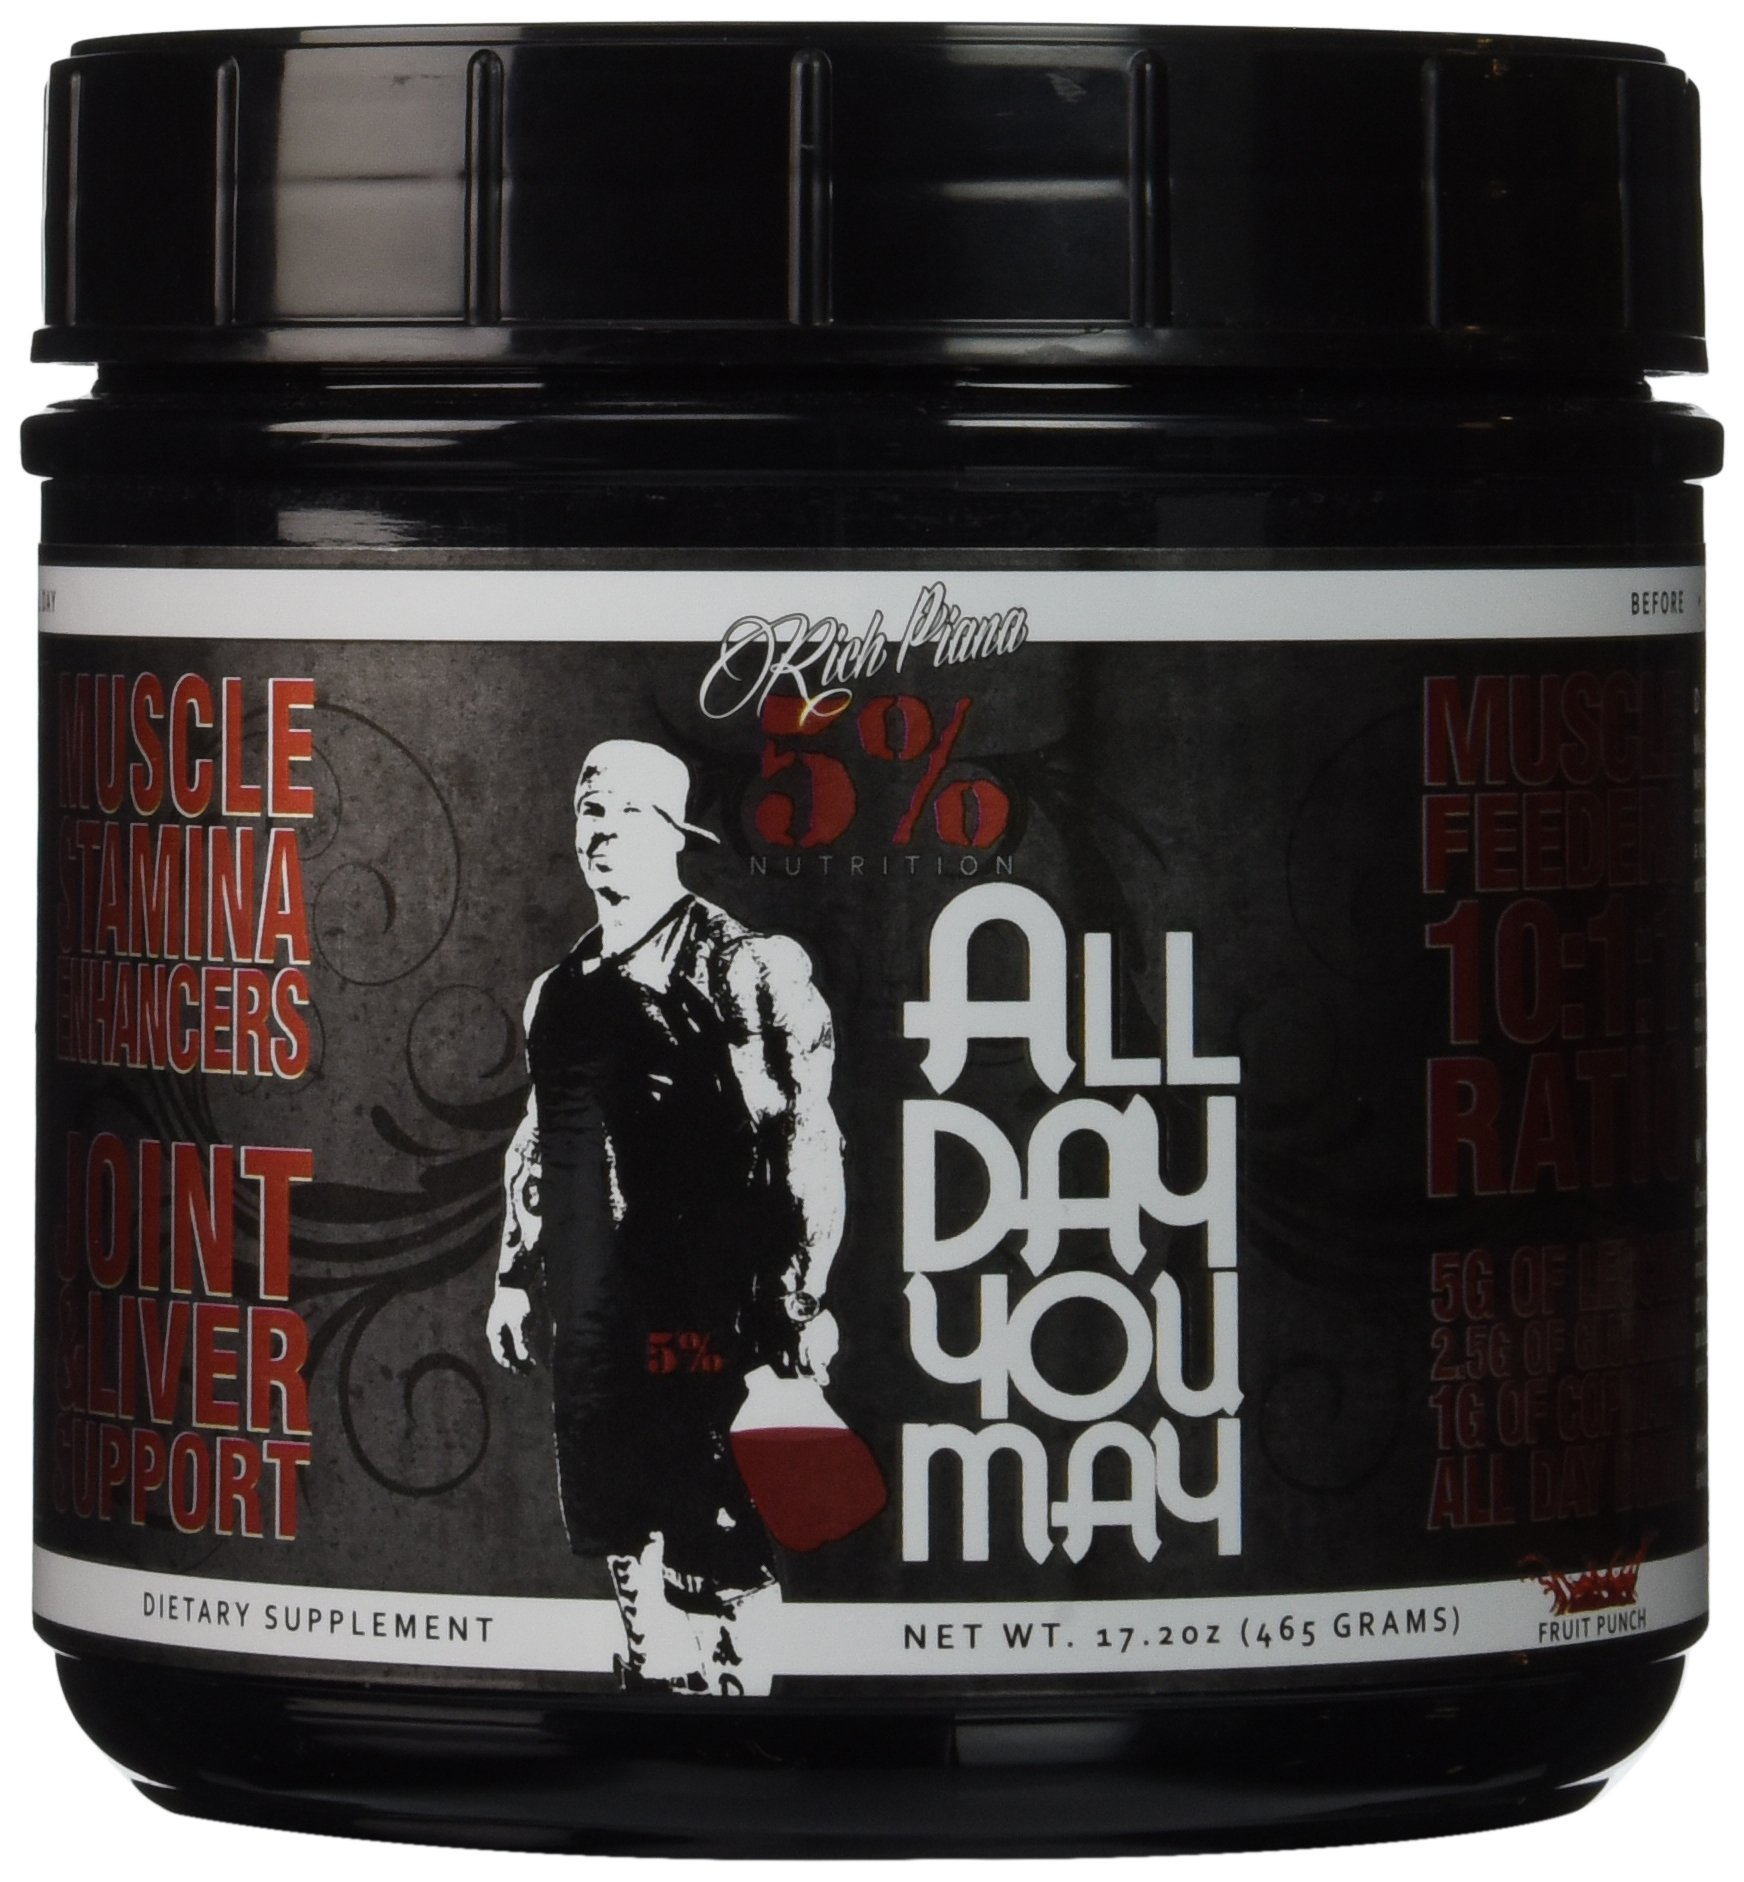 81mutOt2BCL - 5% Nutrition - Rich Piana All Day You May, Fruit Punch, PER1001/462/101